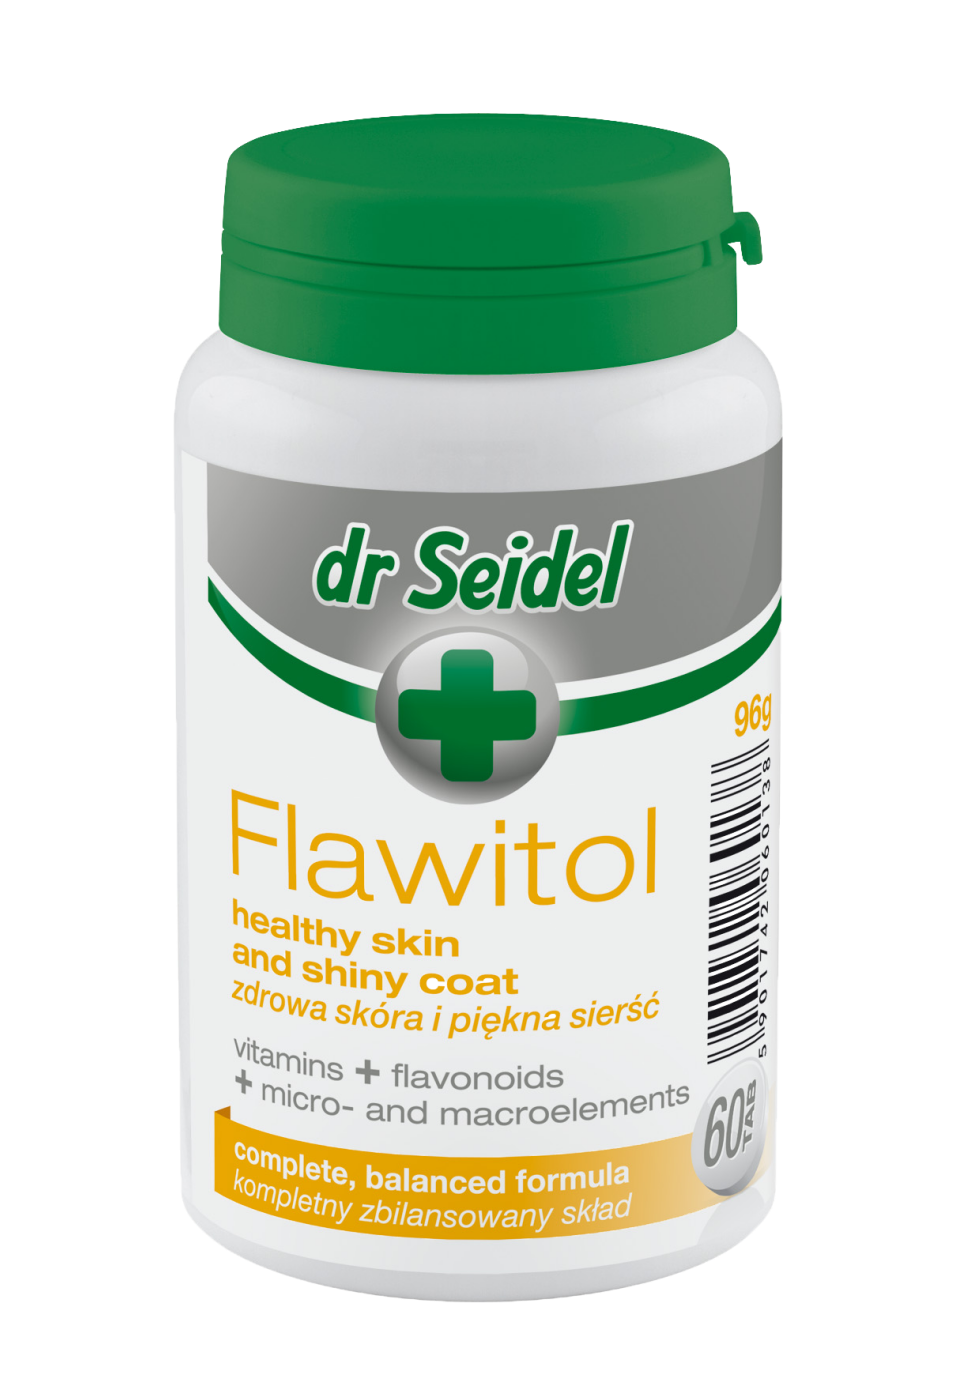 Flawitol for healthy skin and shiny coat (tablets)